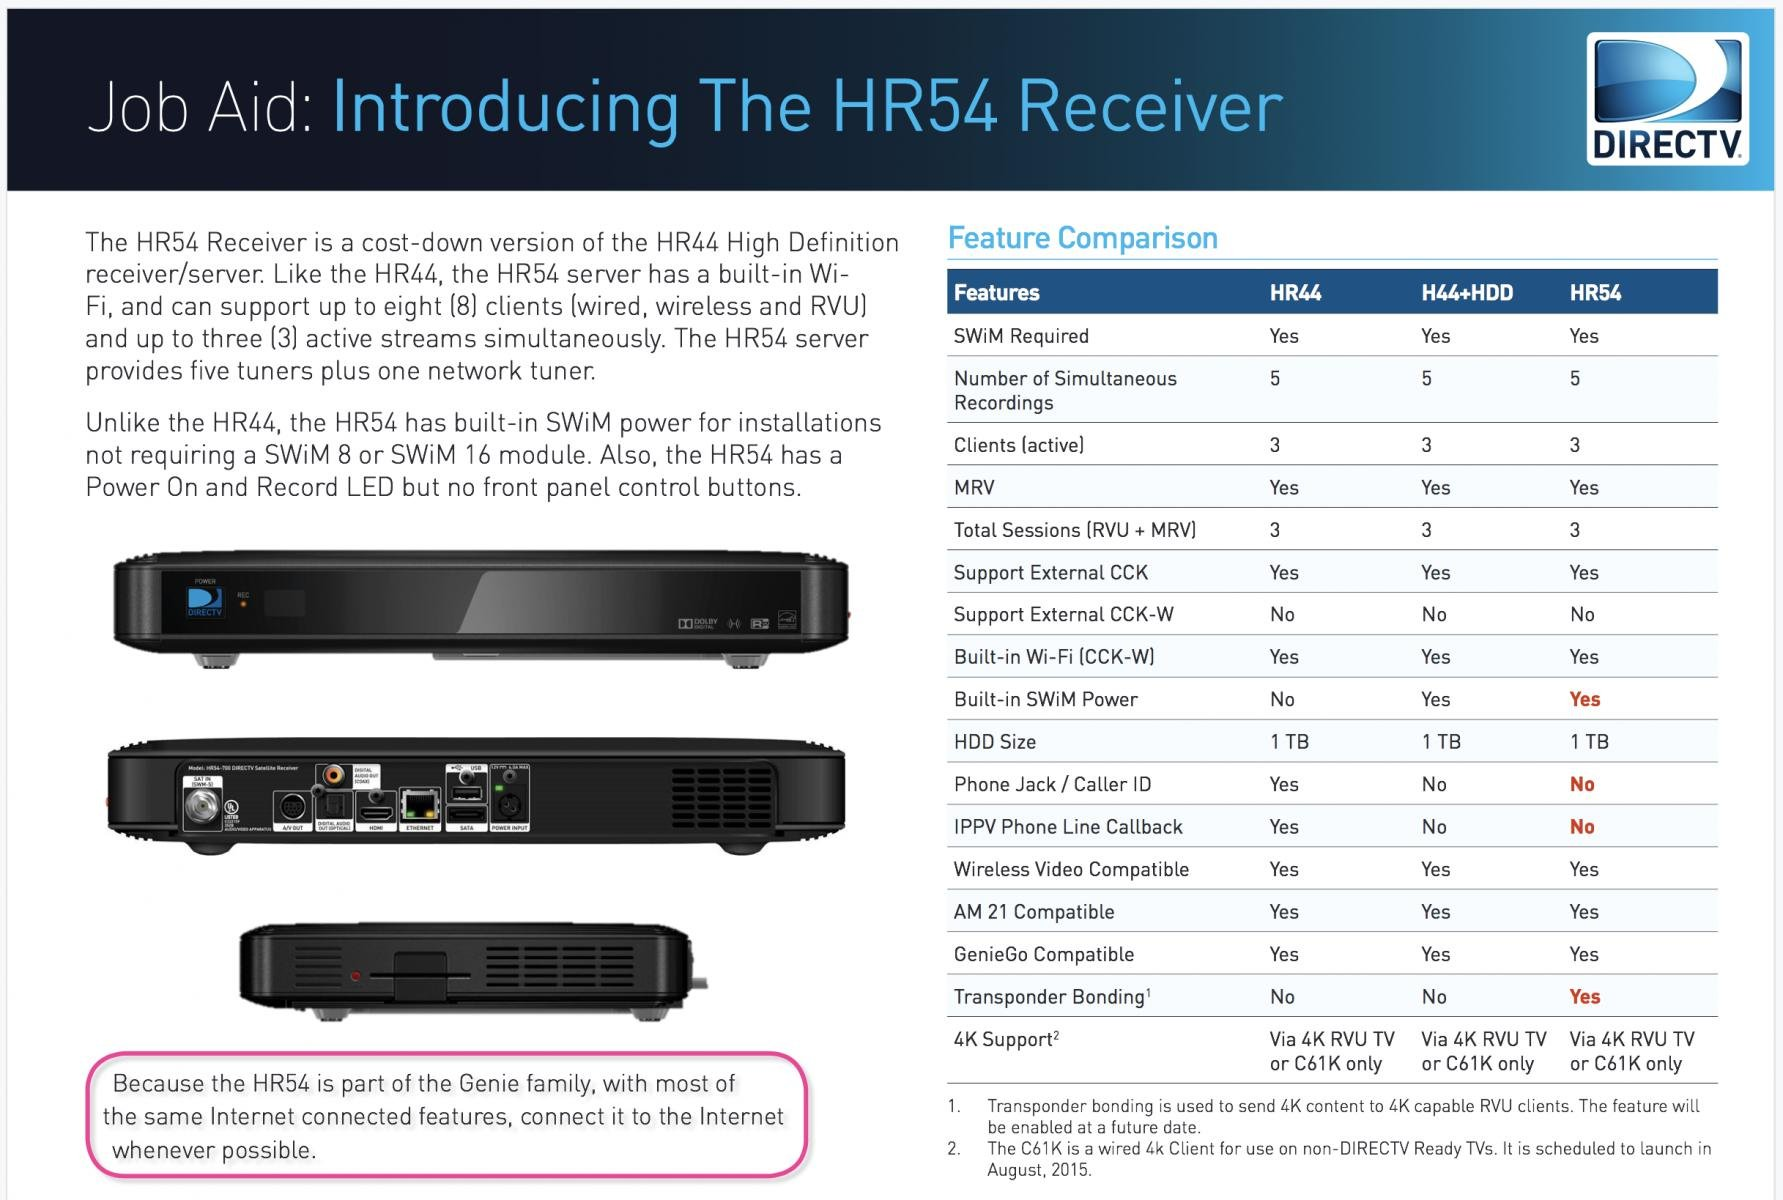 wiring diagram for directv whole home dvr - solidfonts, Wiring diagram